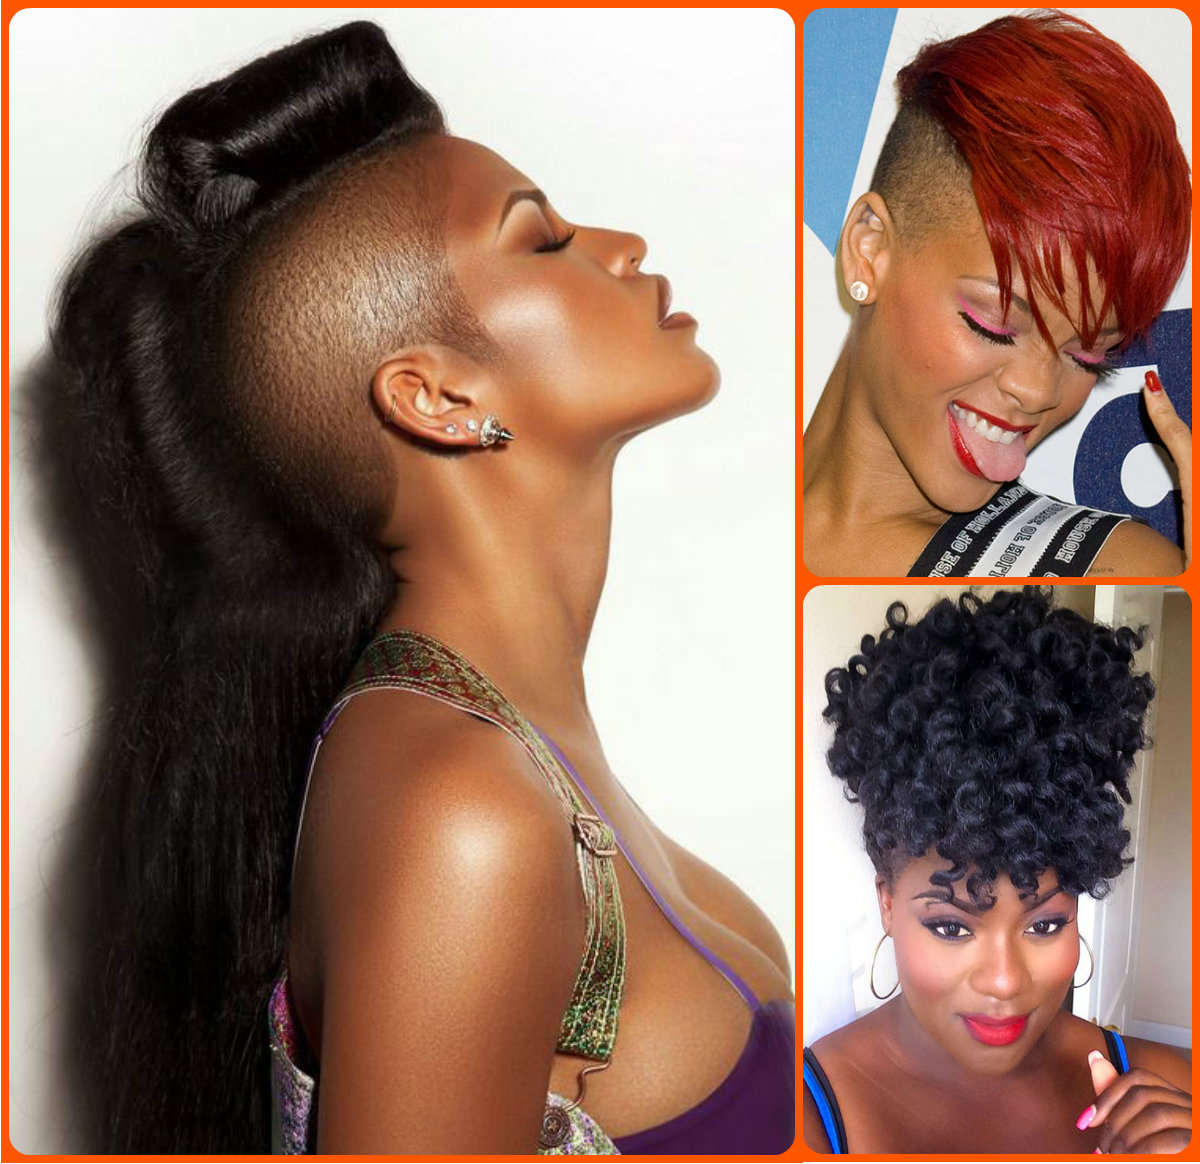 Jazzy Mohawk Hairstyles For Black Women | Hairstyles 2017, Hair Inside Mohawk Short Hairstyles For Black Women (View 4 of 25)